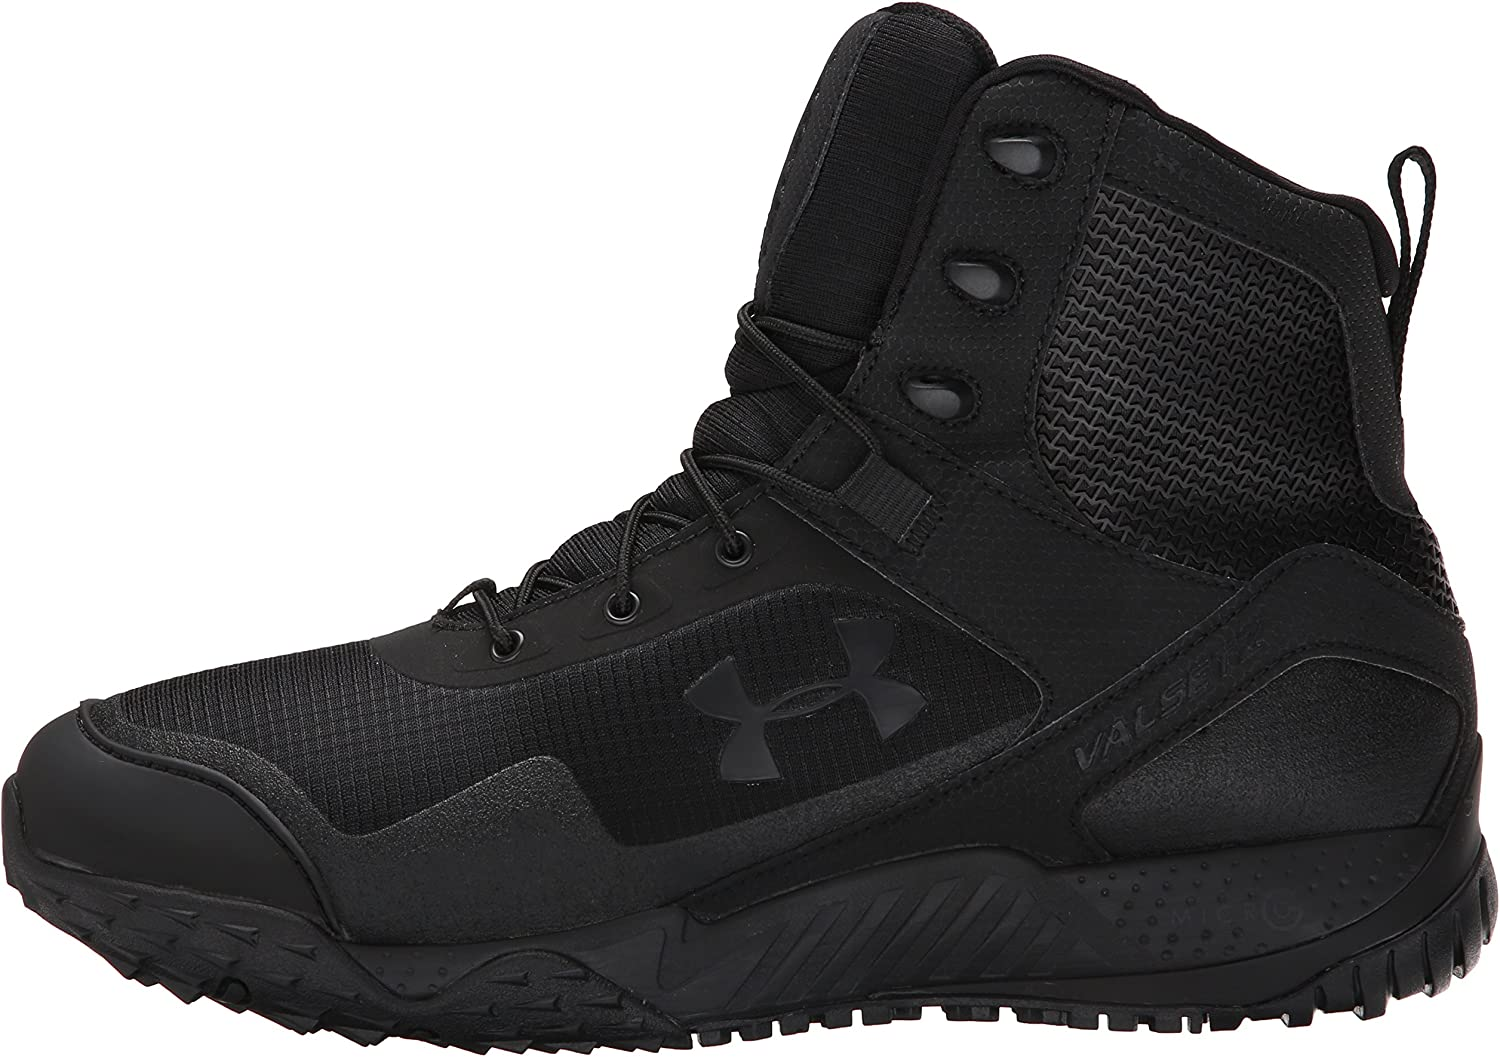 Under Armour Mens Valsetz RTS Side Zip Military and Tactical Boot